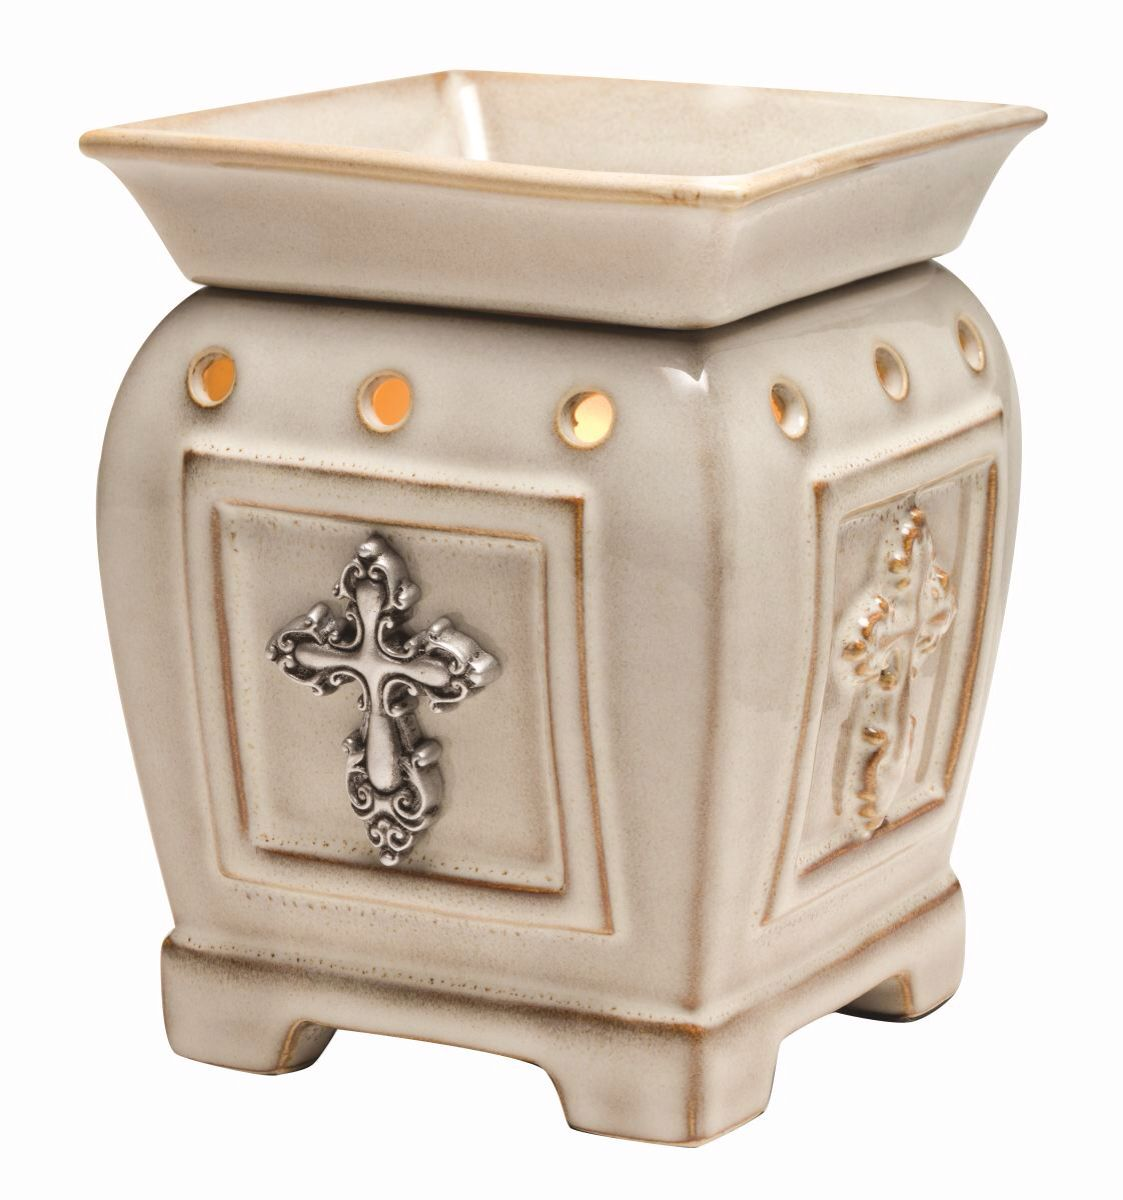 Devoted warmer from Scentsy